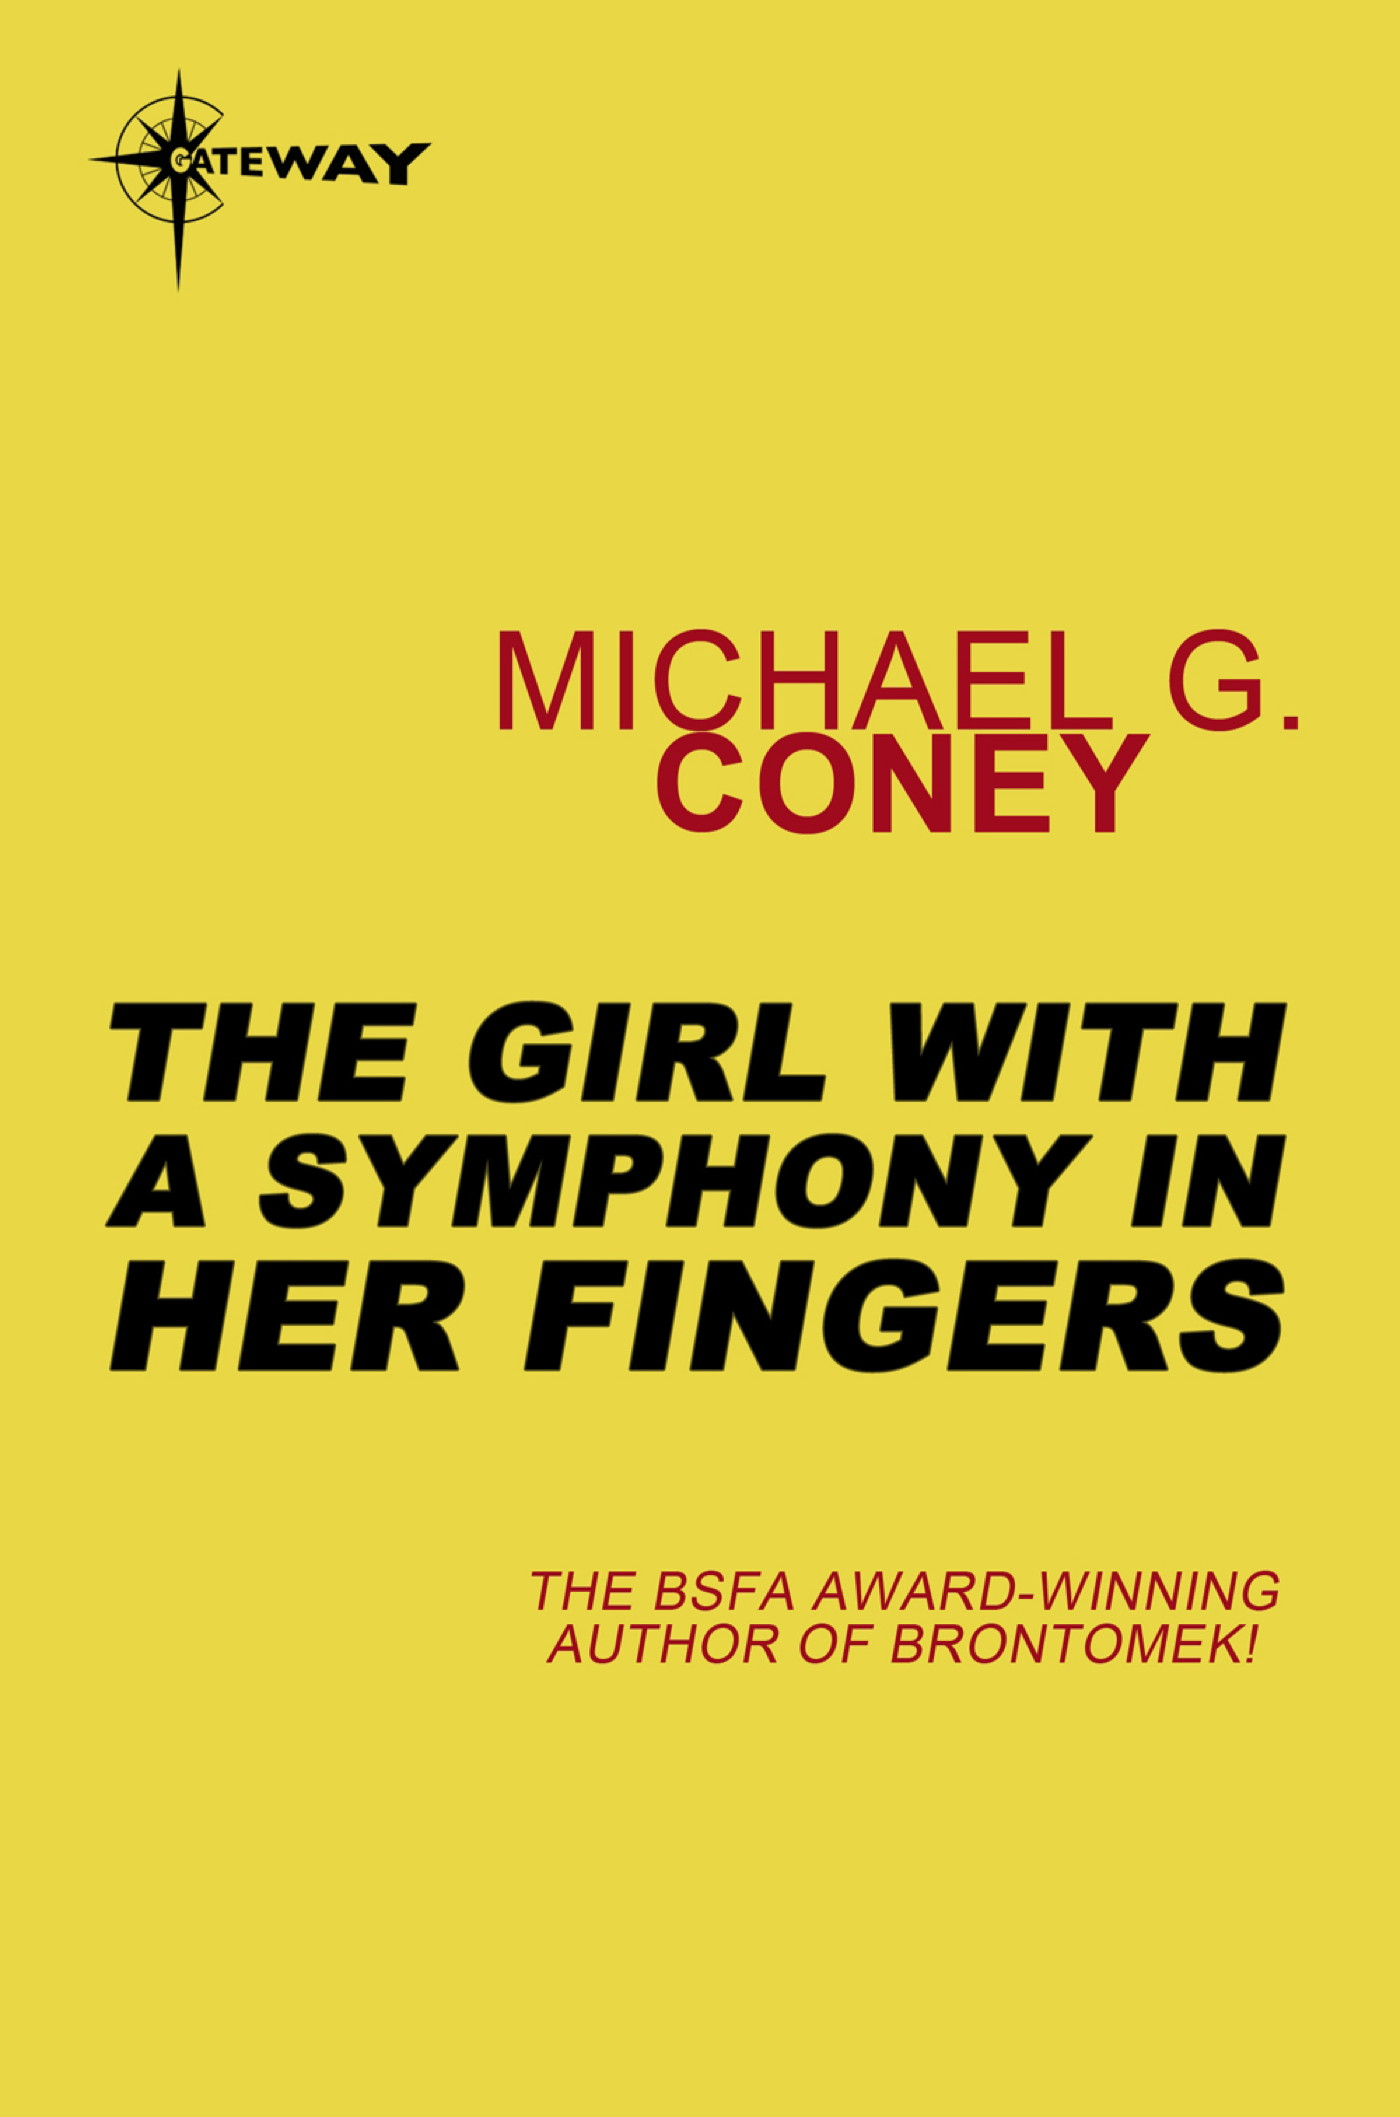 The Girl With a Symphony in Her Fingers